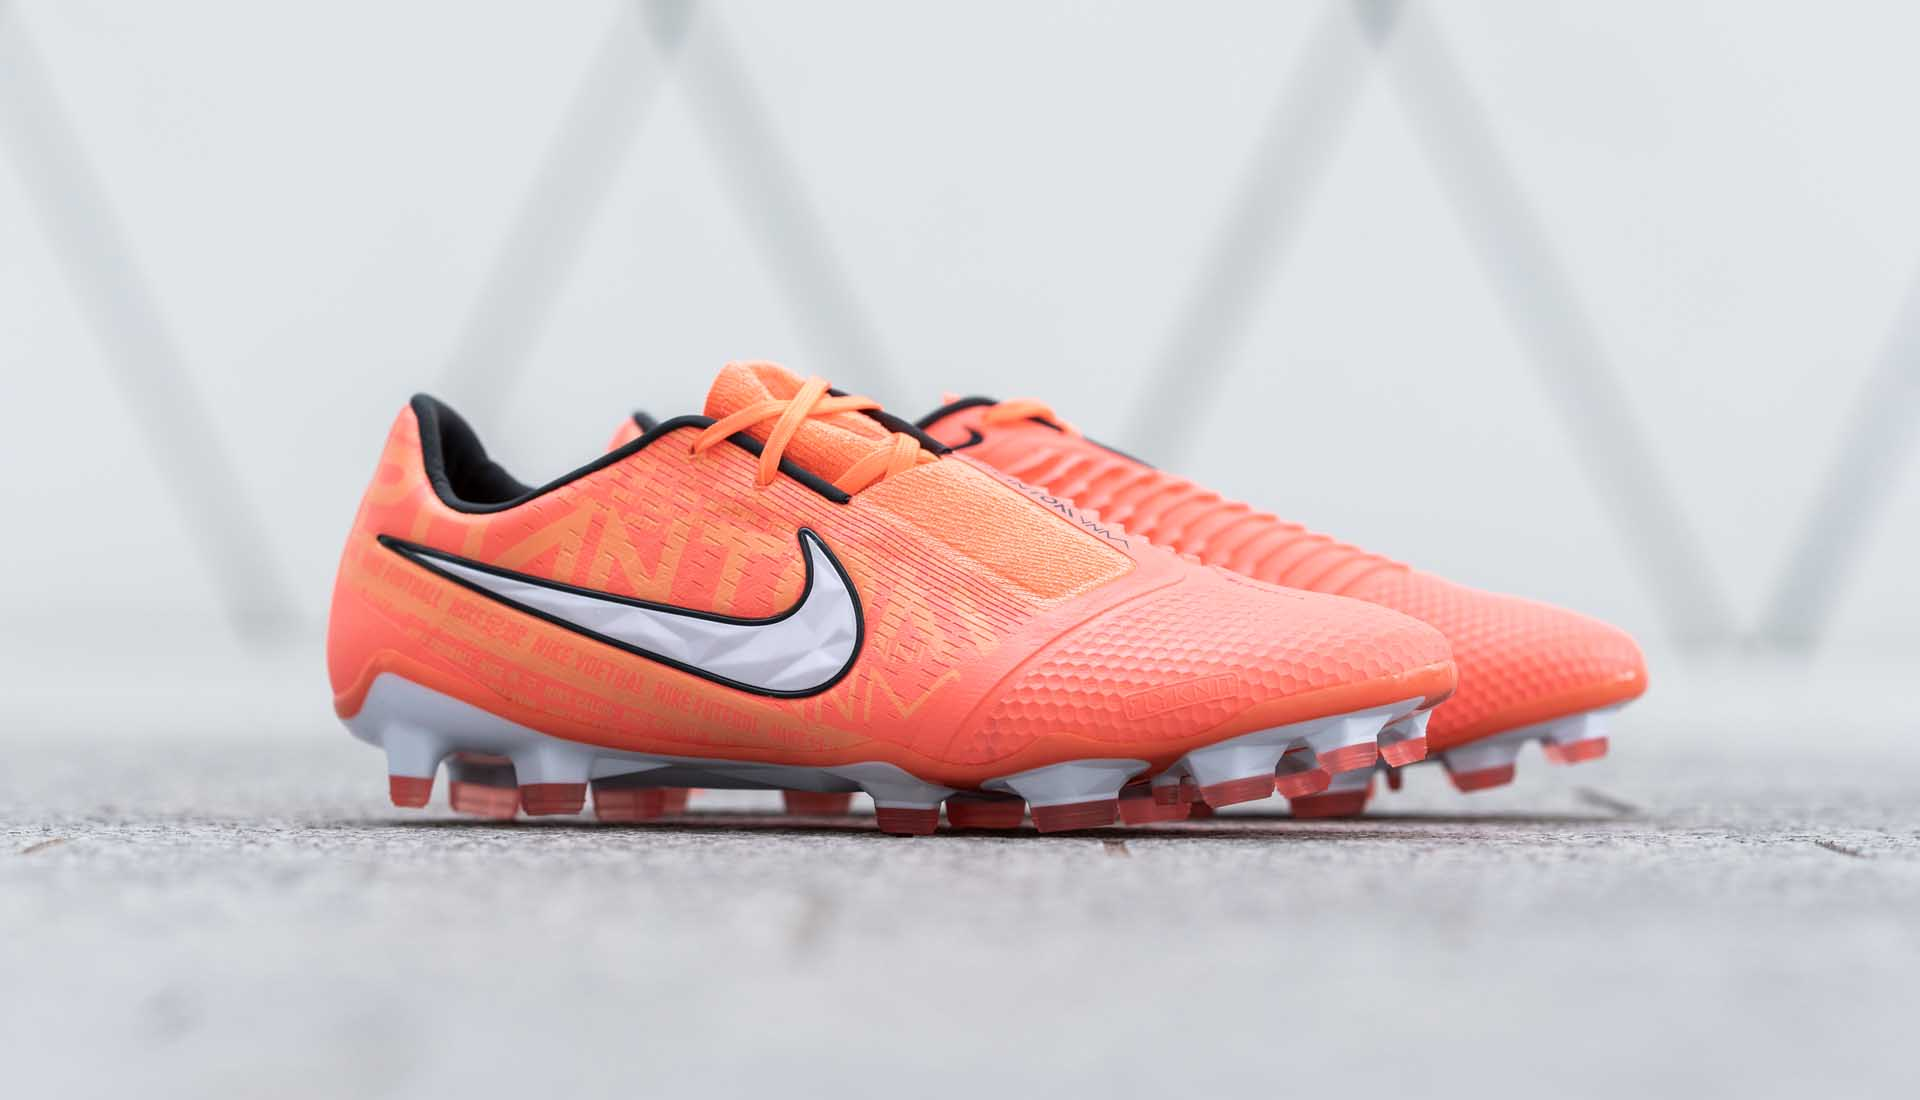 Nike Launch The Phantom Fire Football Boots Pack SoccerBible